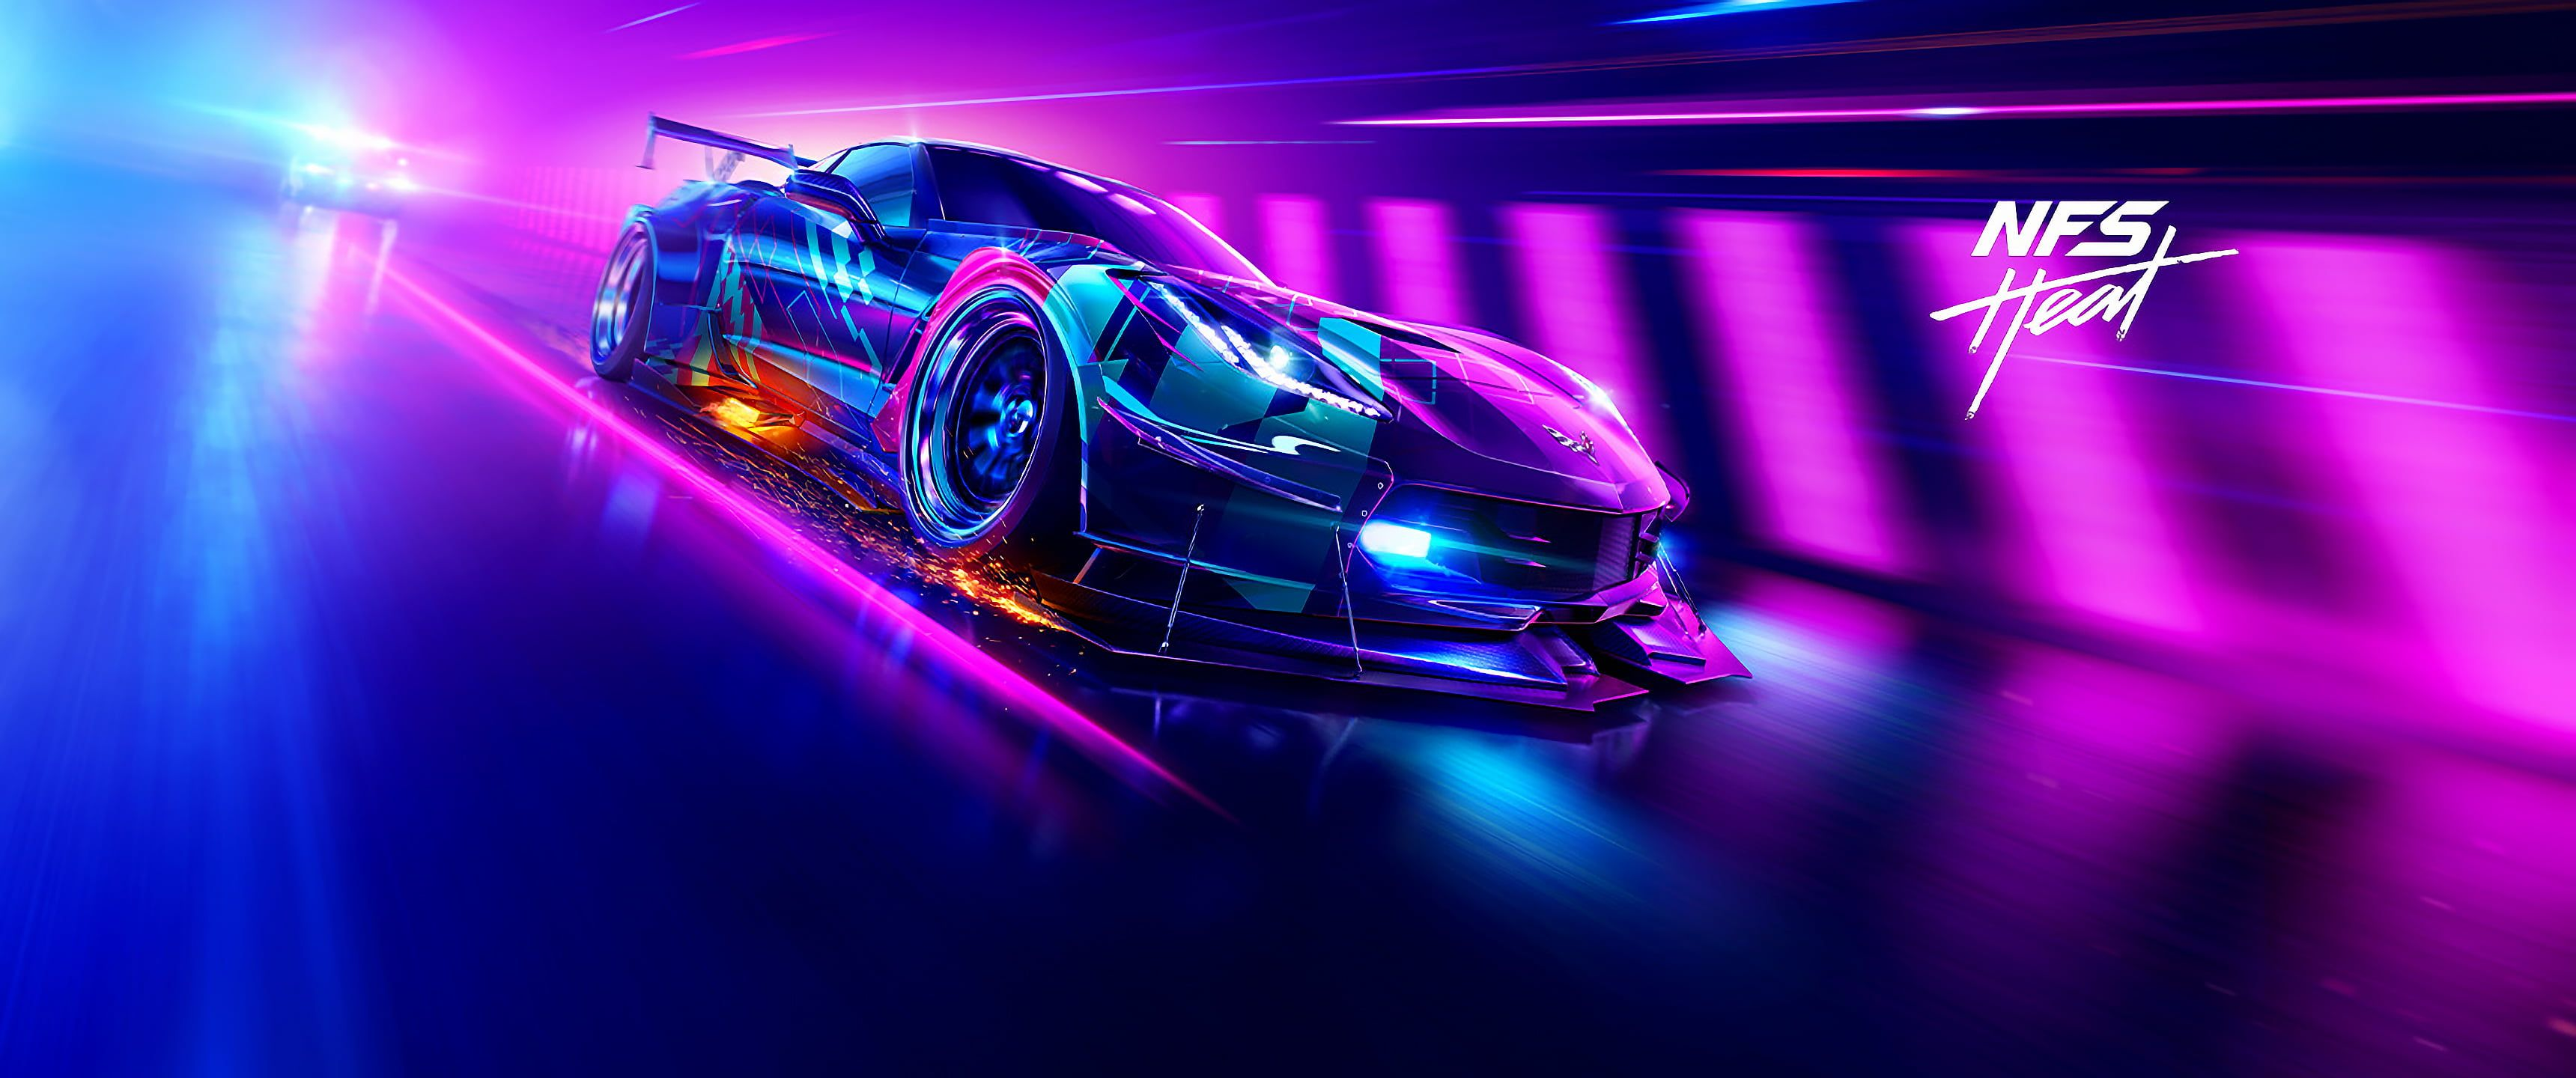 Video Games Video Game Art Ultrawide Ultra Wide Need For Speed Heat Car Corvette 2k Wallpaper Hdwallpap In 2020 Need For Speed Games Need For Speed Speed Games